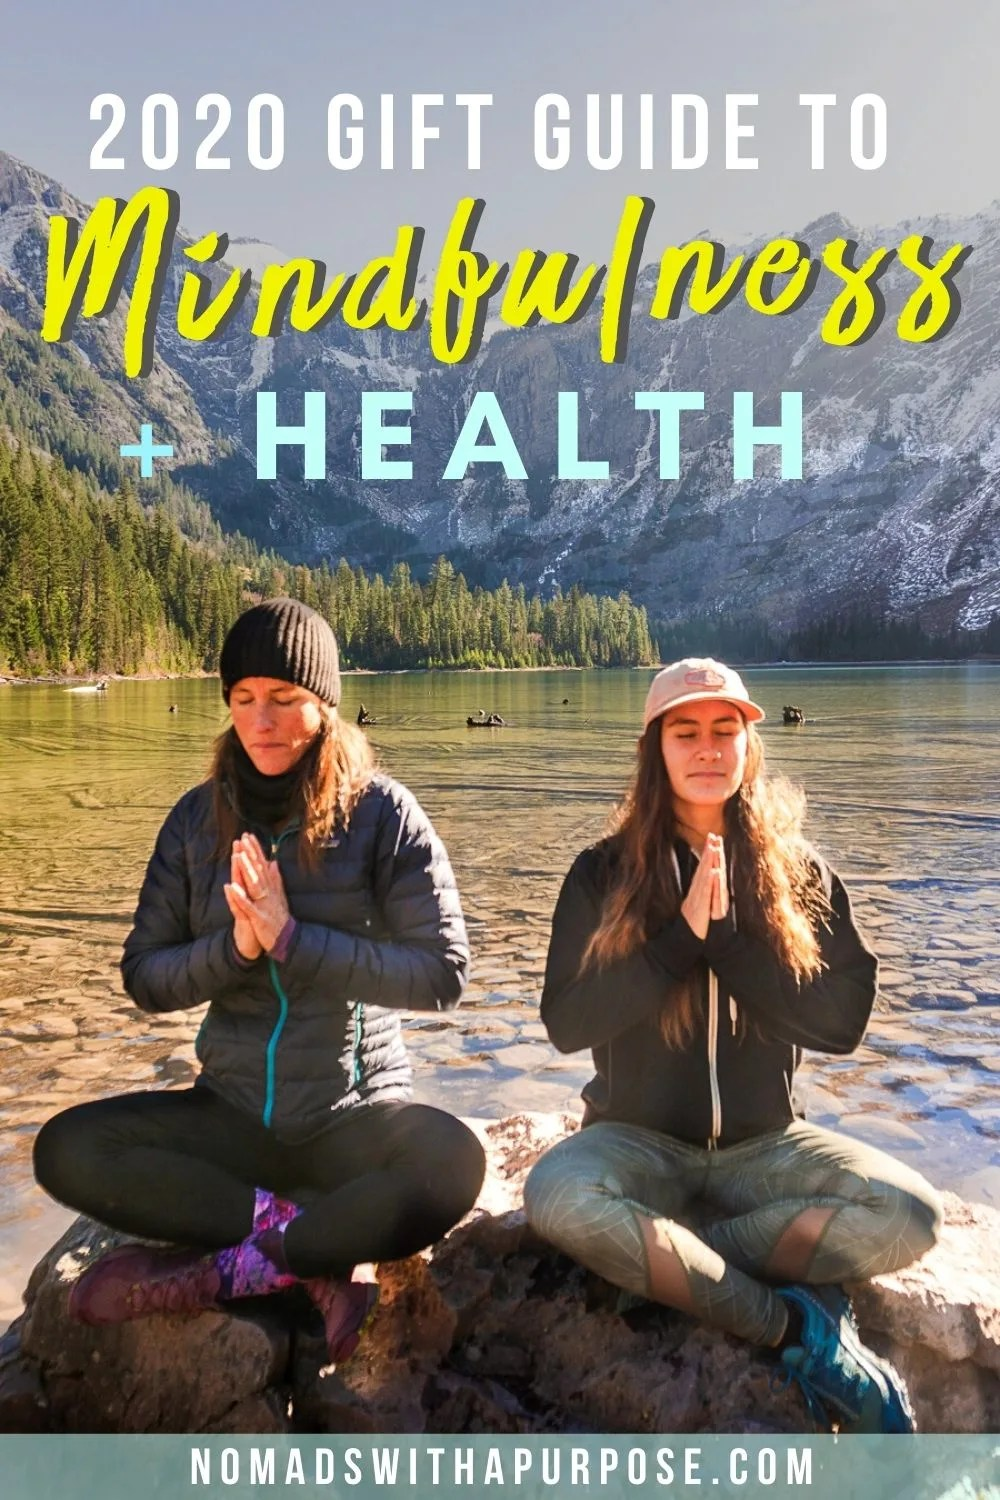 2020 Gift Guide To Mindfulness And Health